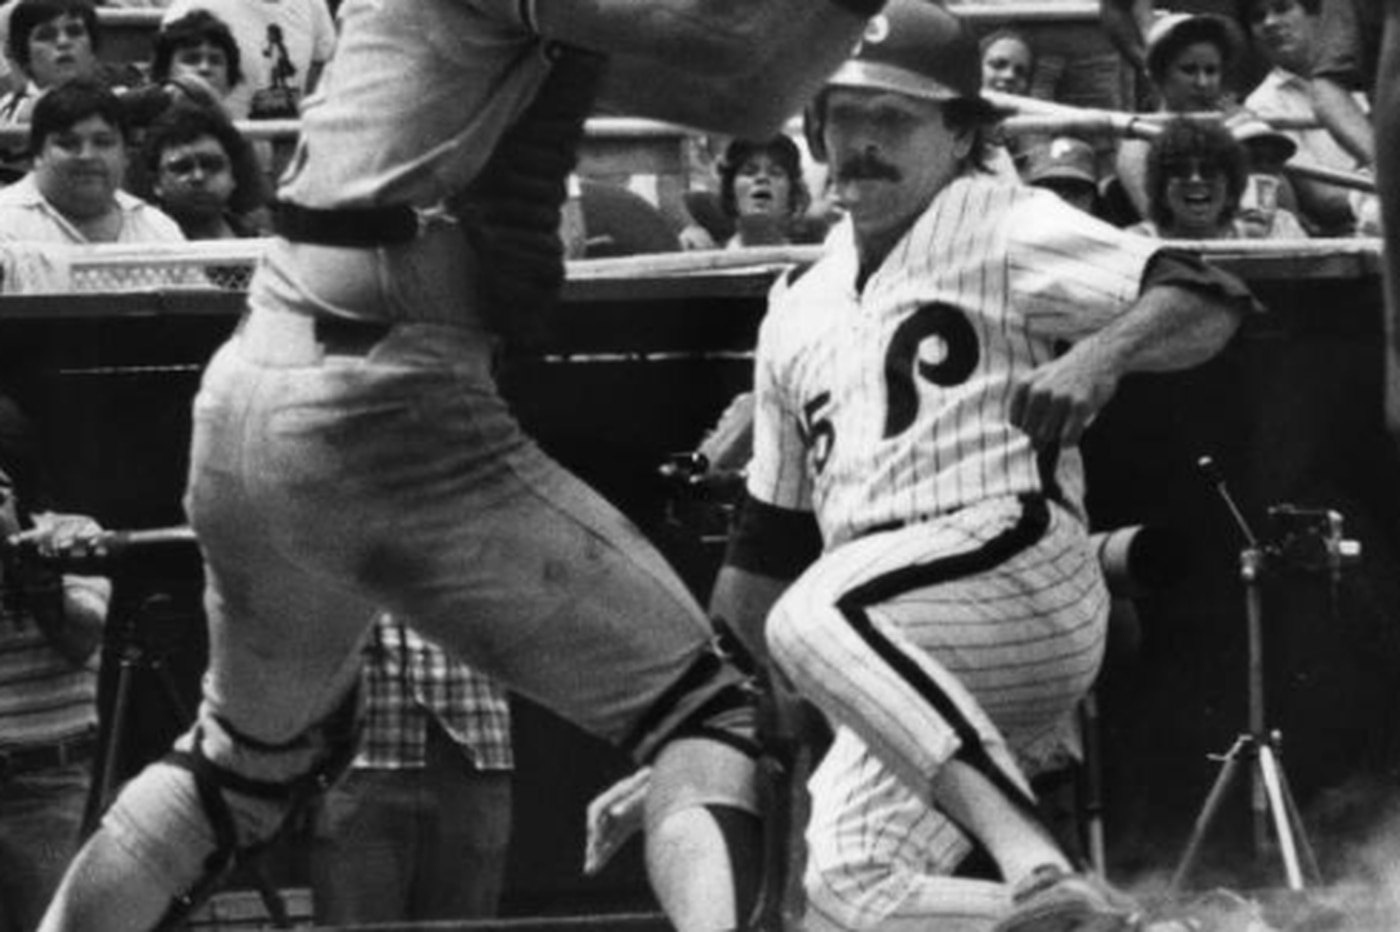 1980 Phillies unsung heroes: Del Unser went from the racquetball court to the World Series